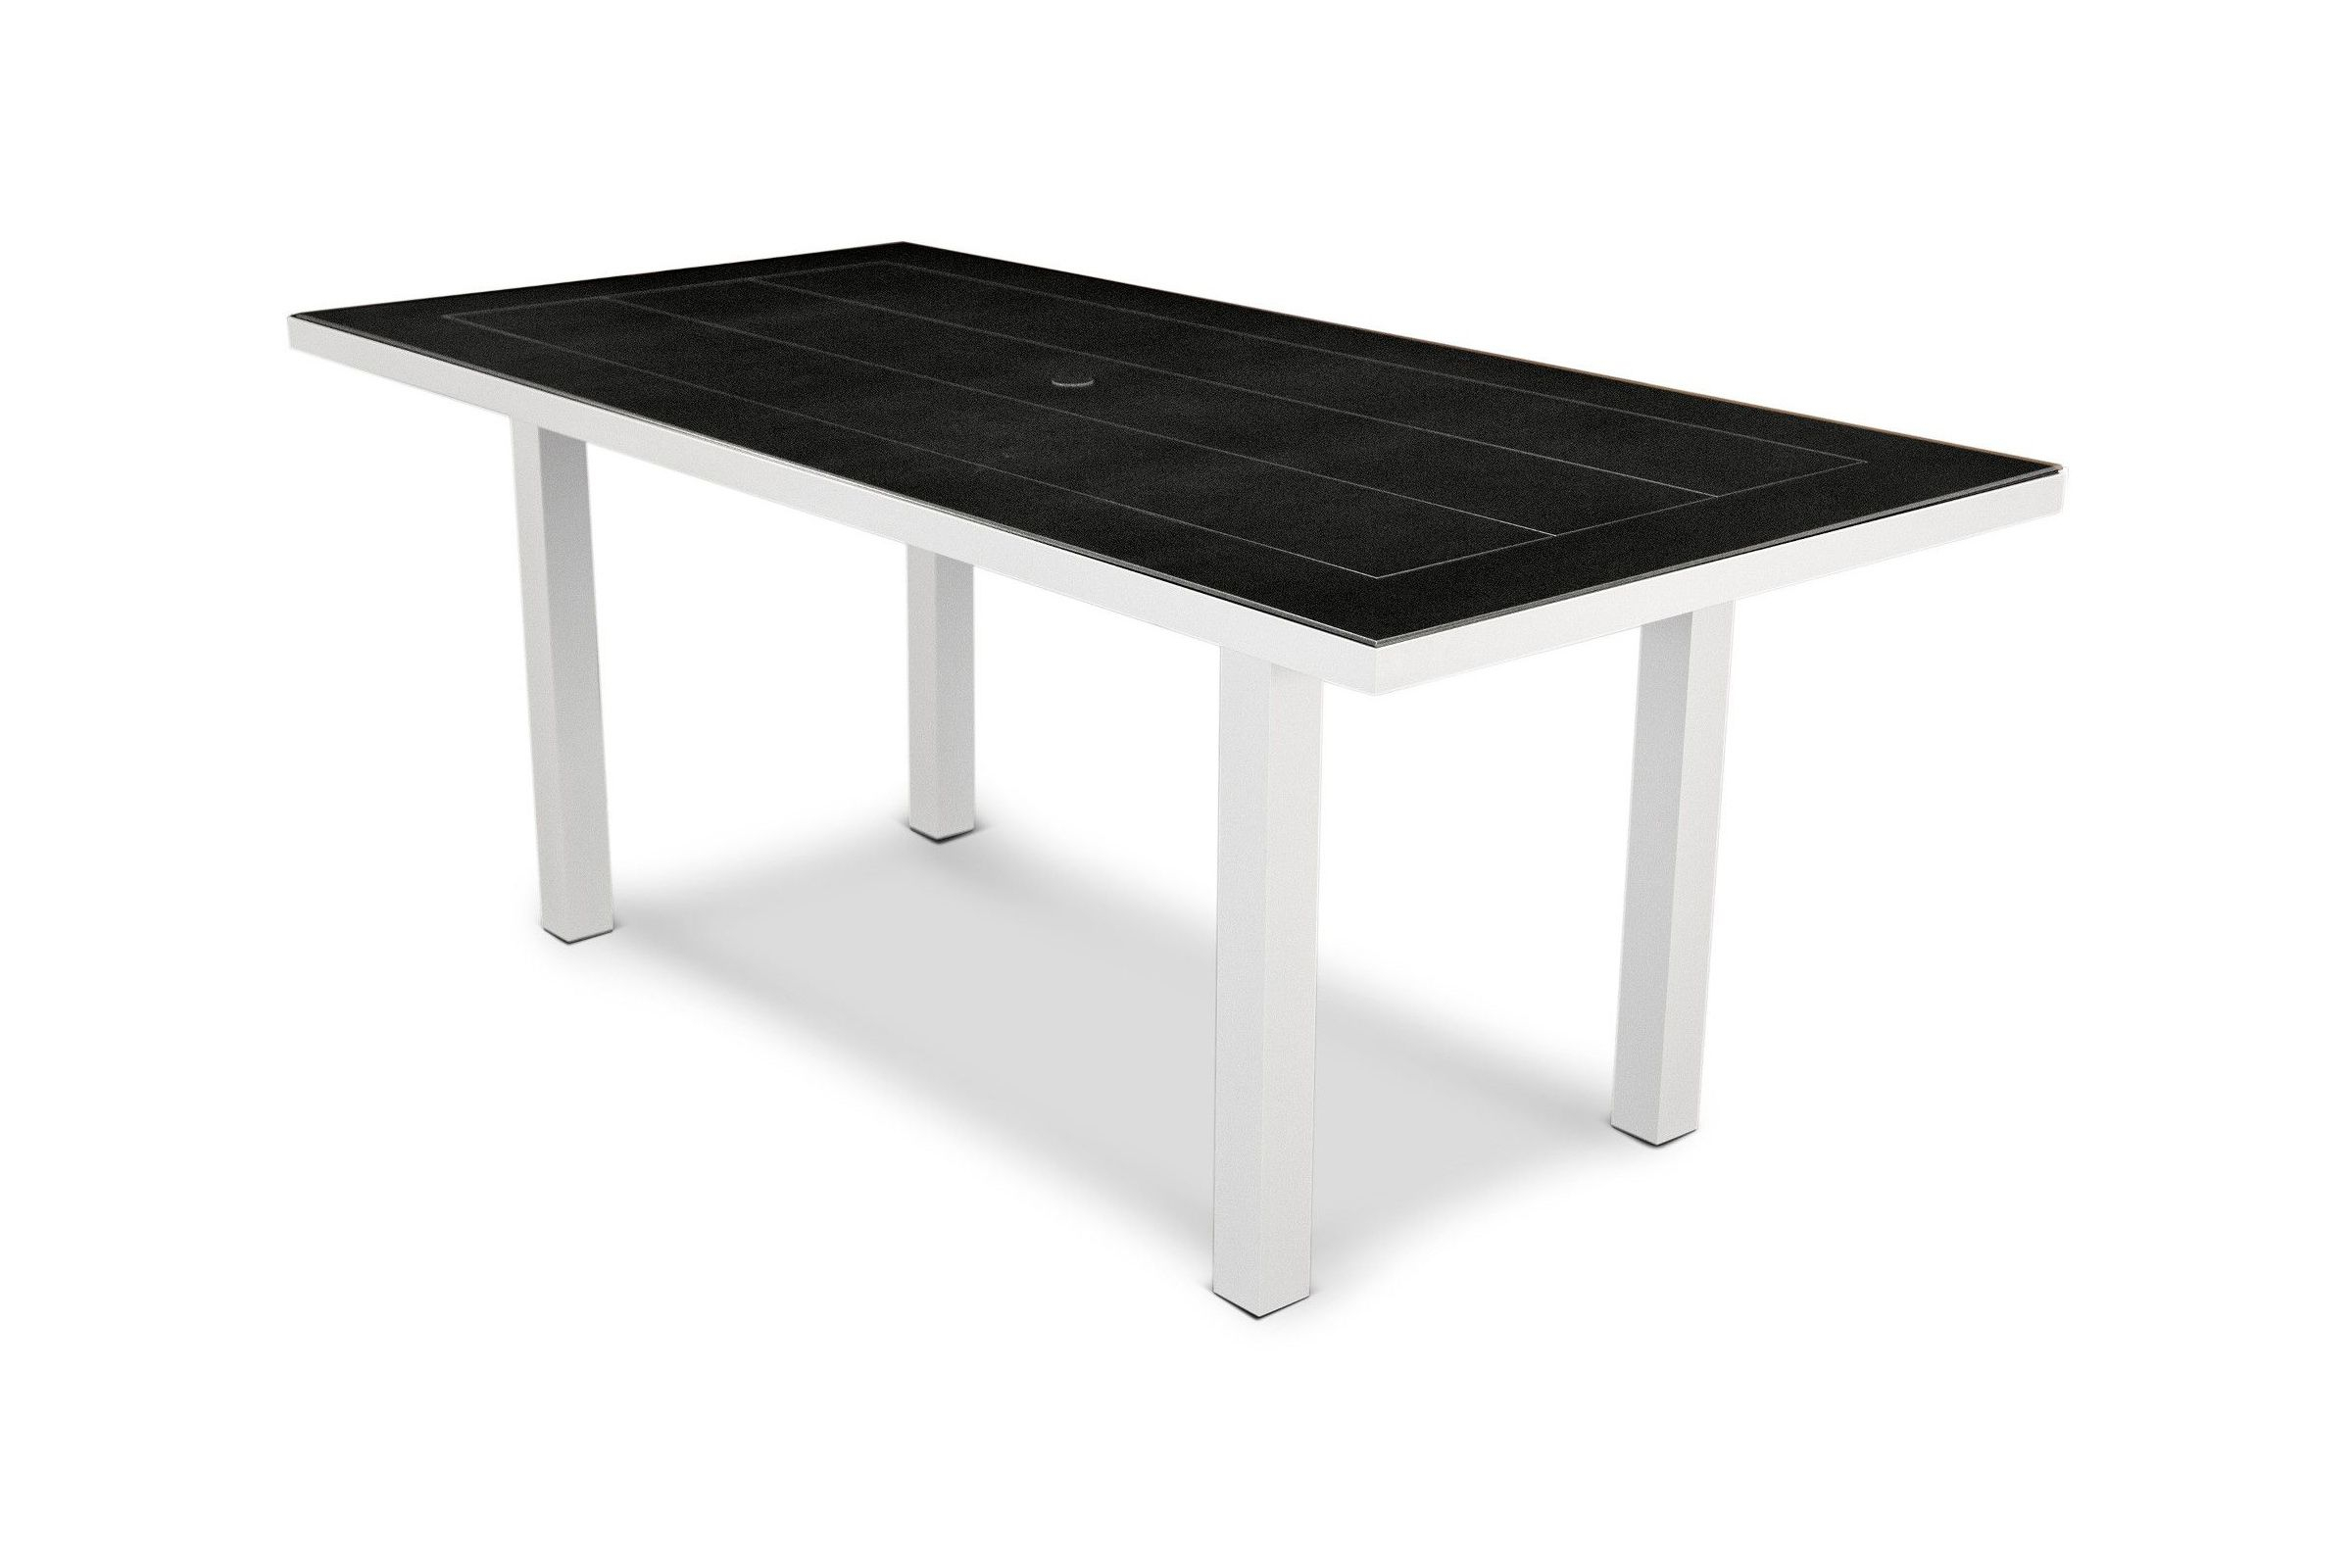 """Mgp 36"""" X 72"""" Dining Table At320 Regarding Most Popular Menifee 36'' Dining Tables (View 15 of 15)"""